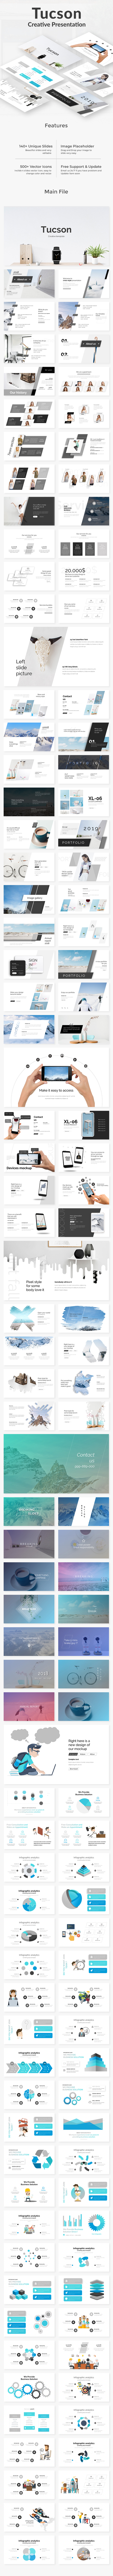 Tucson Creative Powerpoint Template - Creative PowerPoint Templates